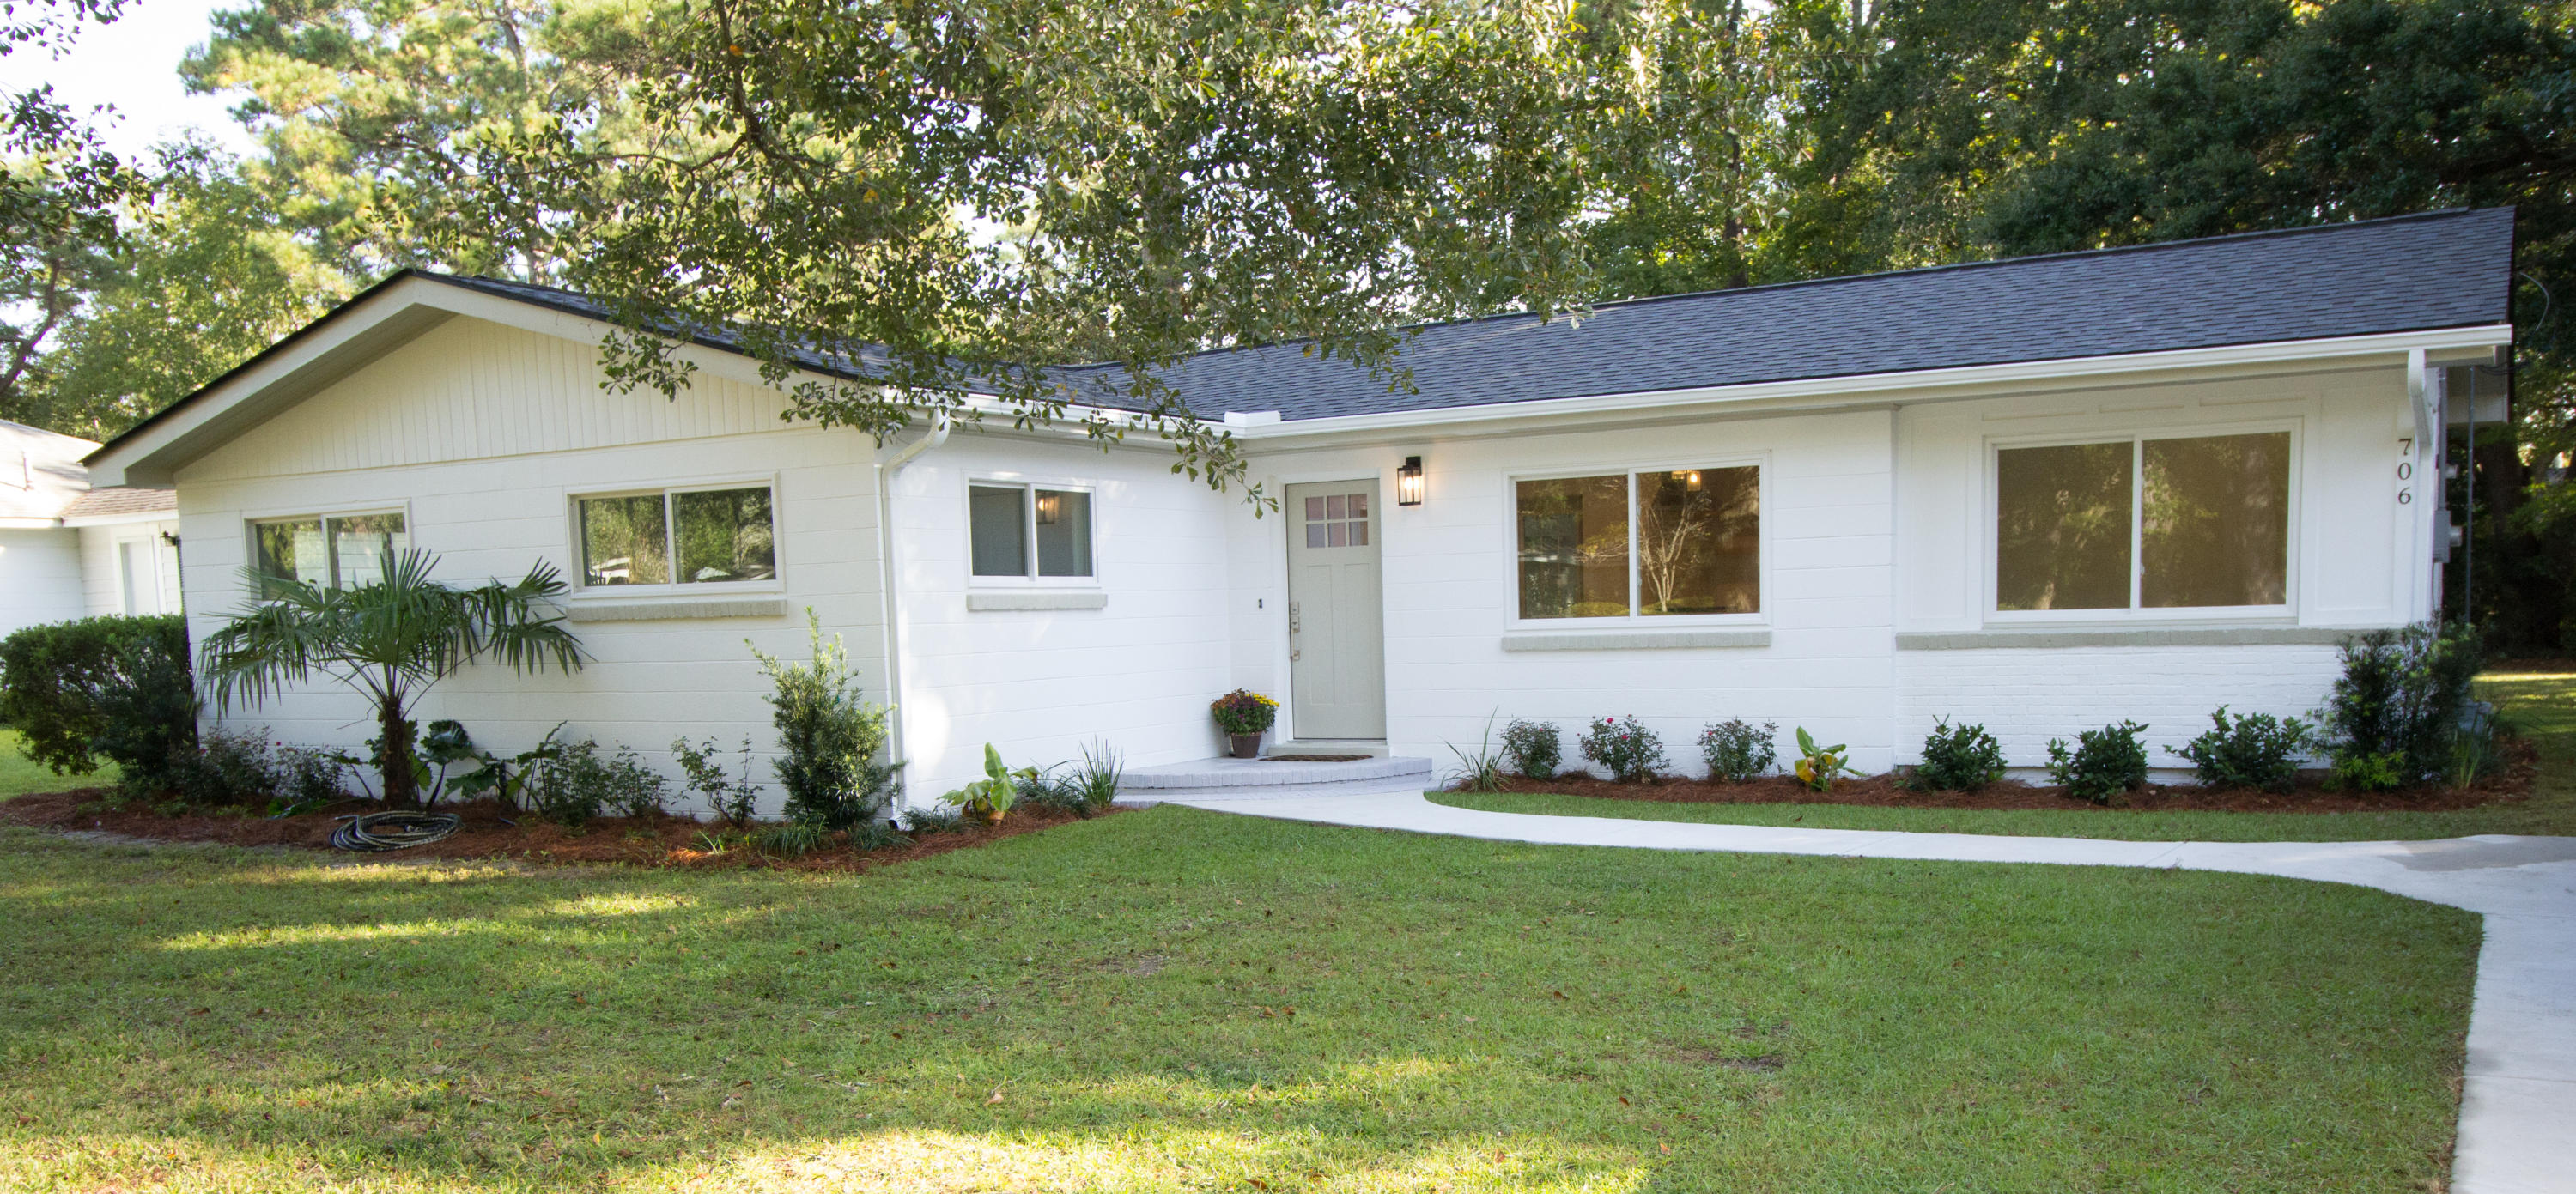 706 Whitmarsh Drive Charleston, SC 29407